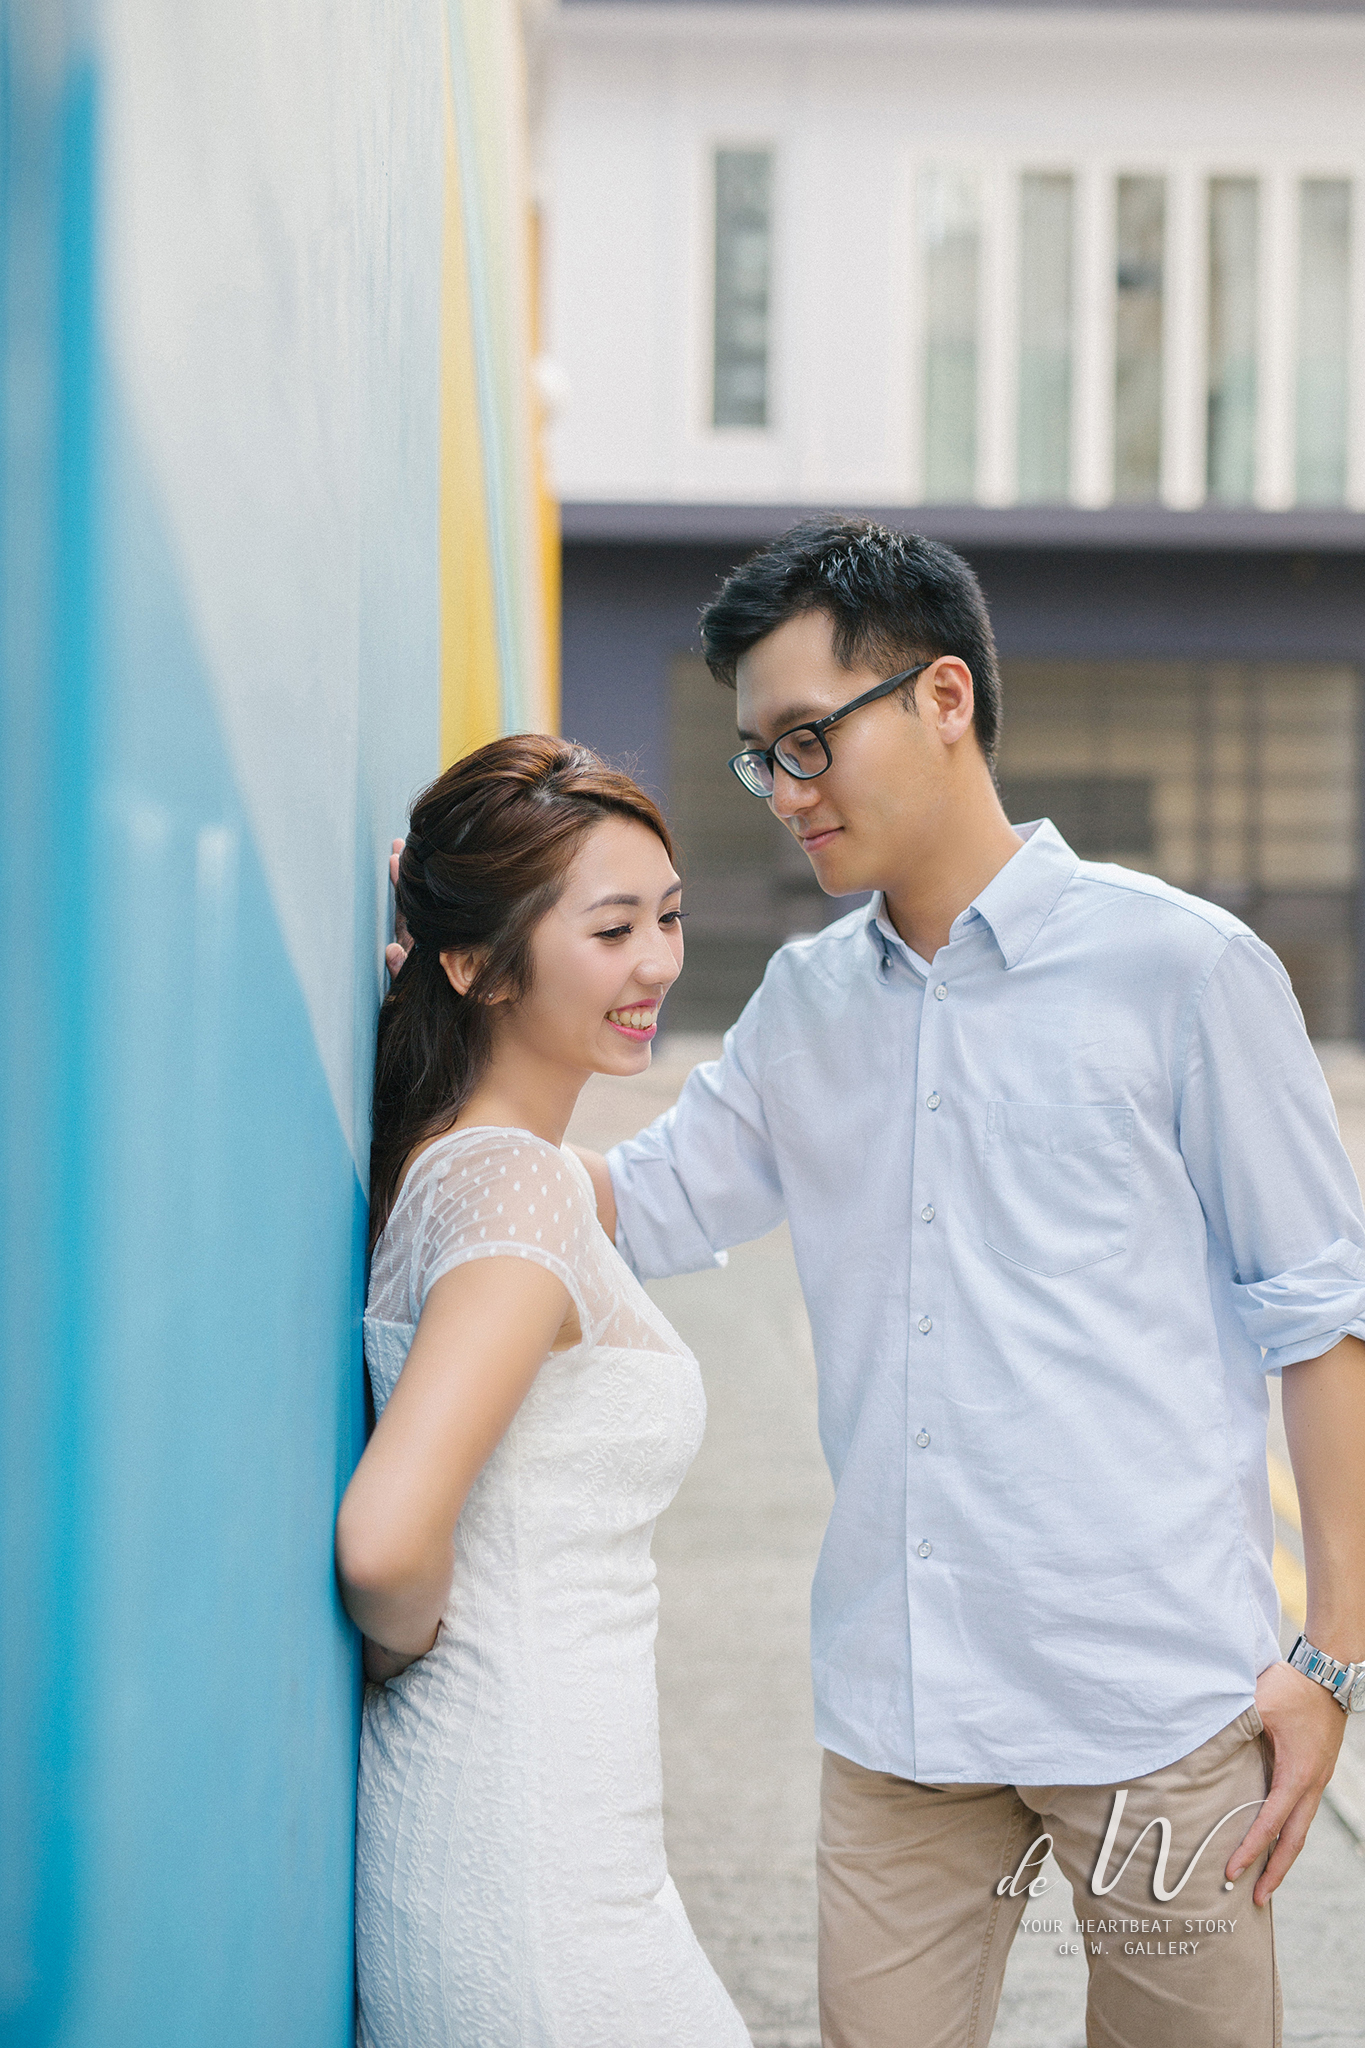 2048 de w gallery Film style hong kong 底片 拍拖 engagement vsco 故事 中環 西環 central-13